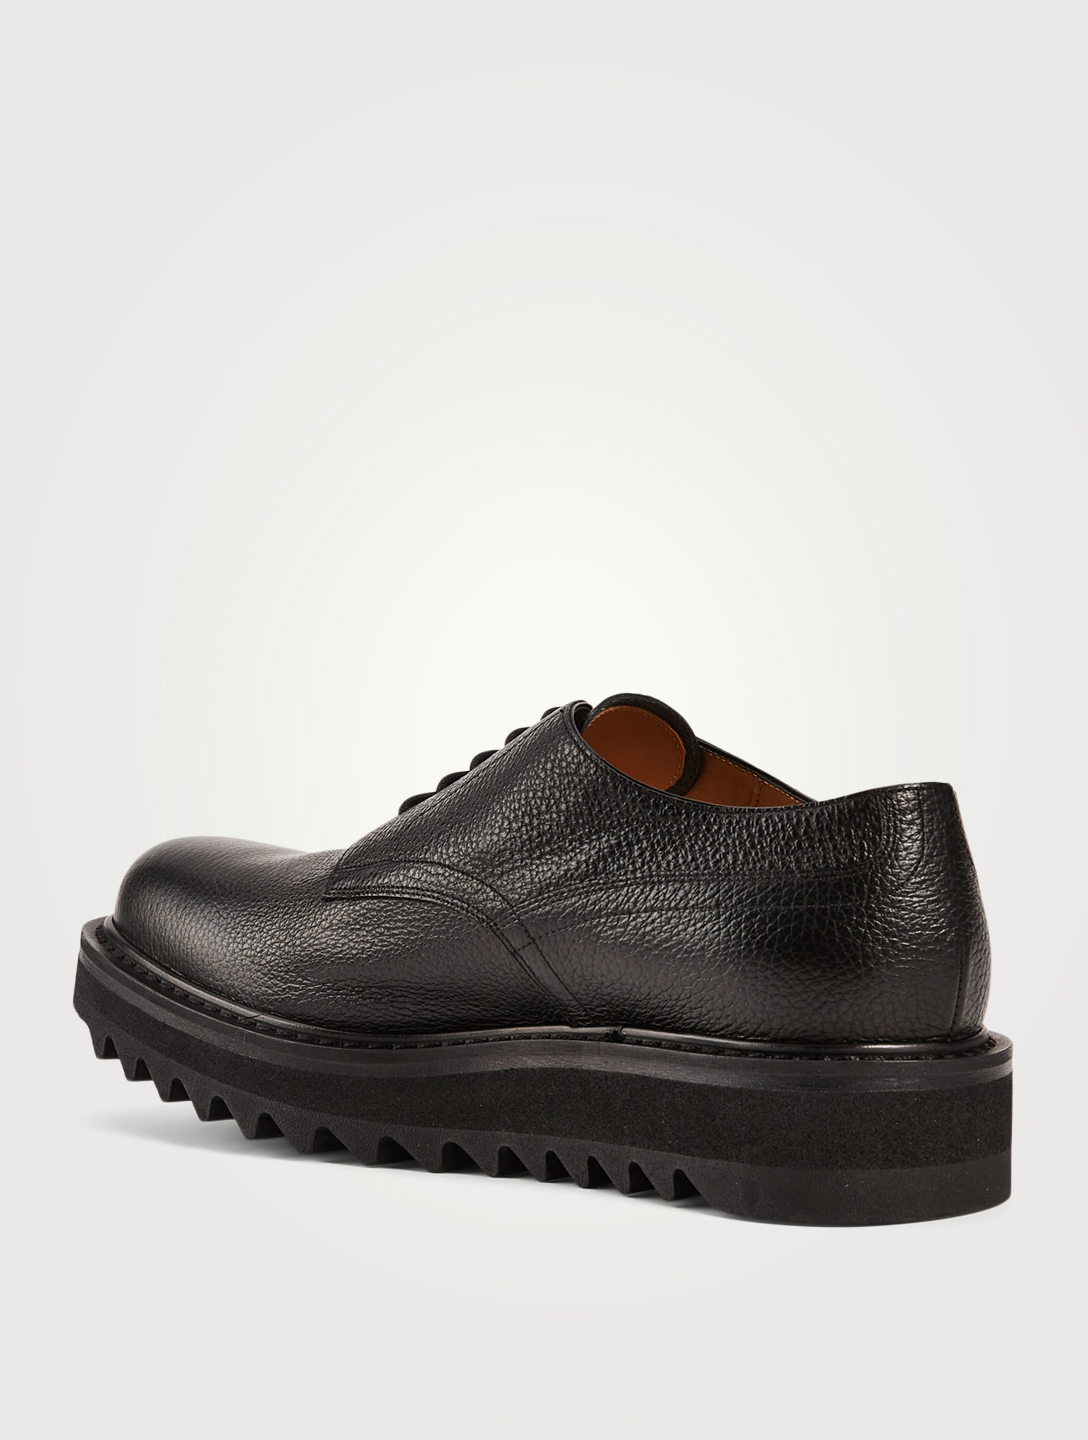 DRIES VAN NOTEN Leather Platform Derby Shoes Men's Black